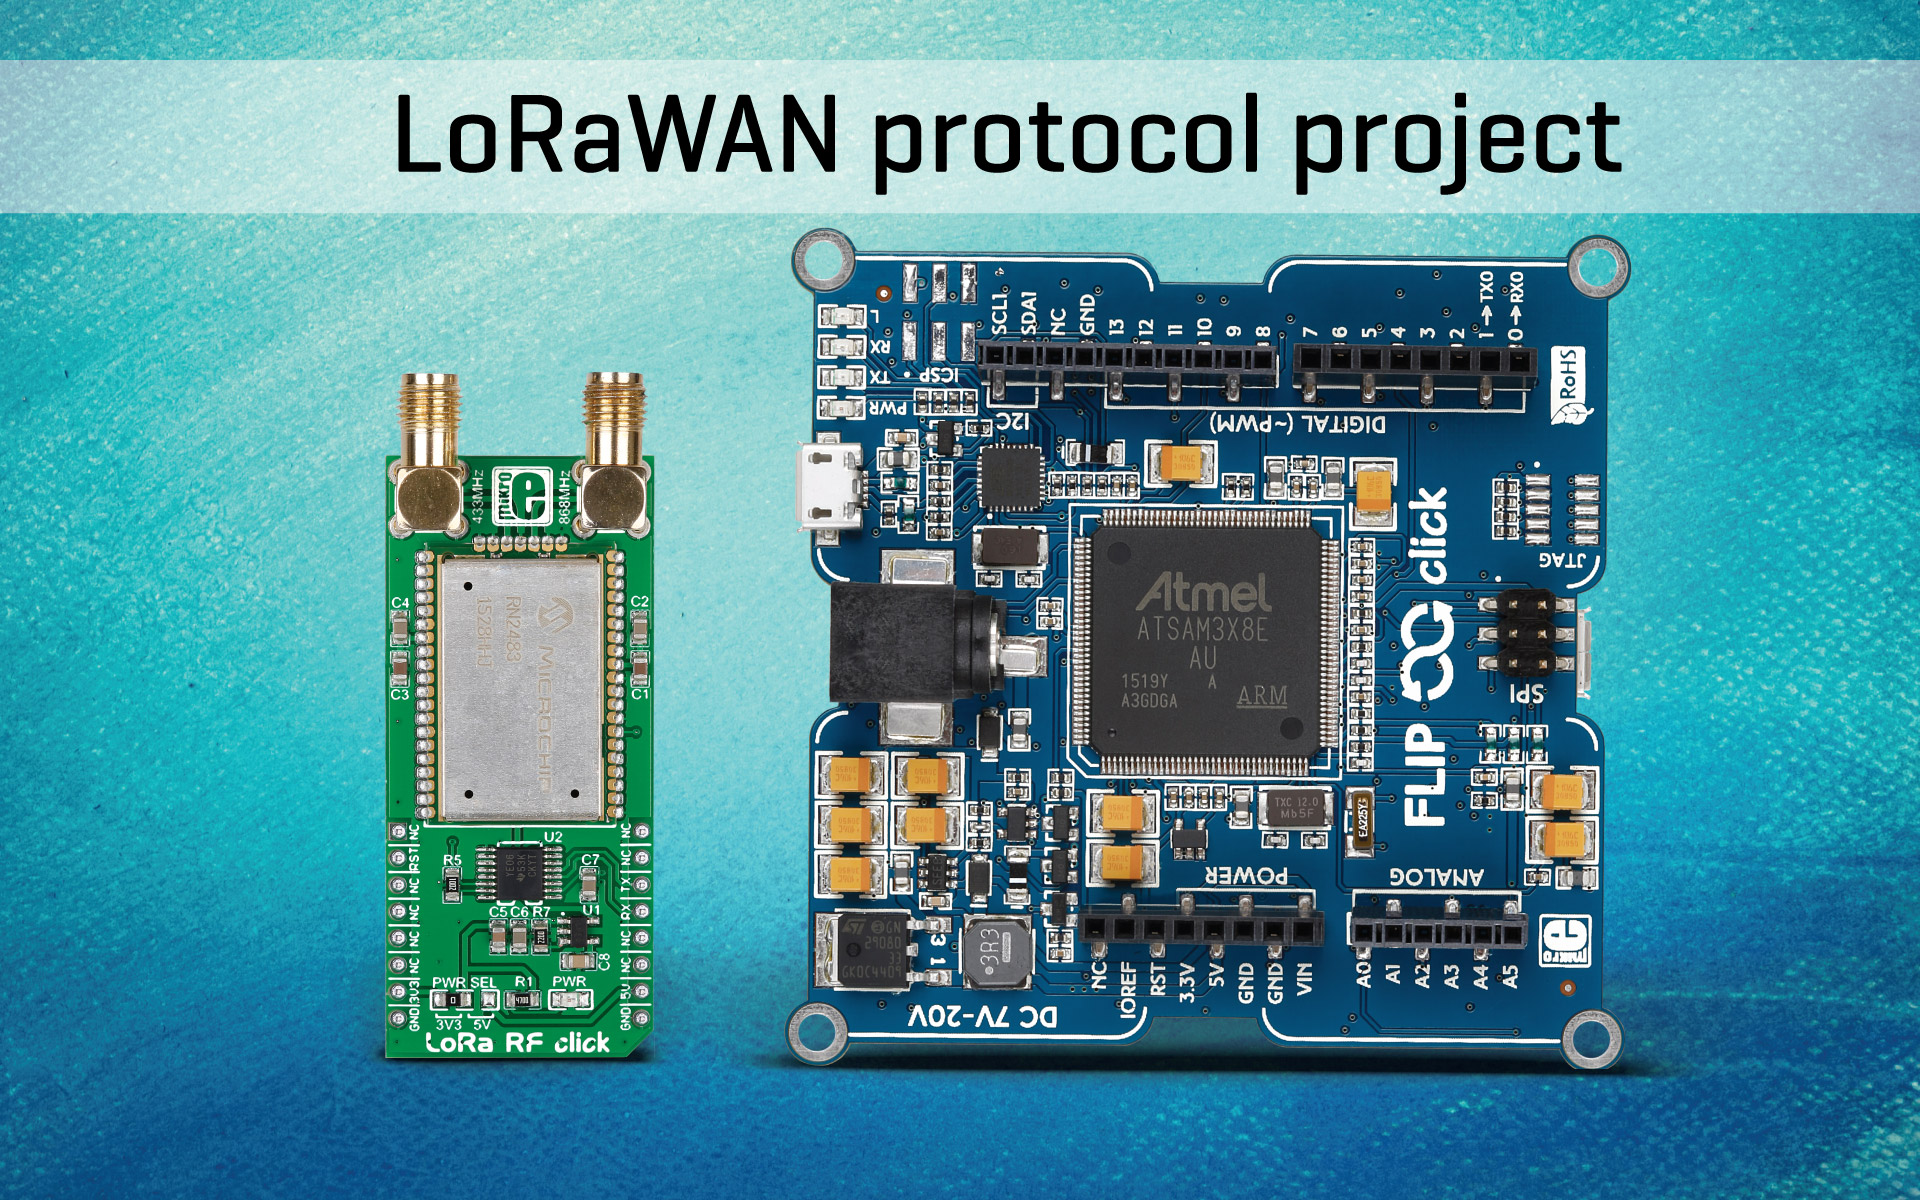 Flipclick And Lora Click A Lorawan Protocol Project Question Electronics Forum Circuits Projects Microcontrollers